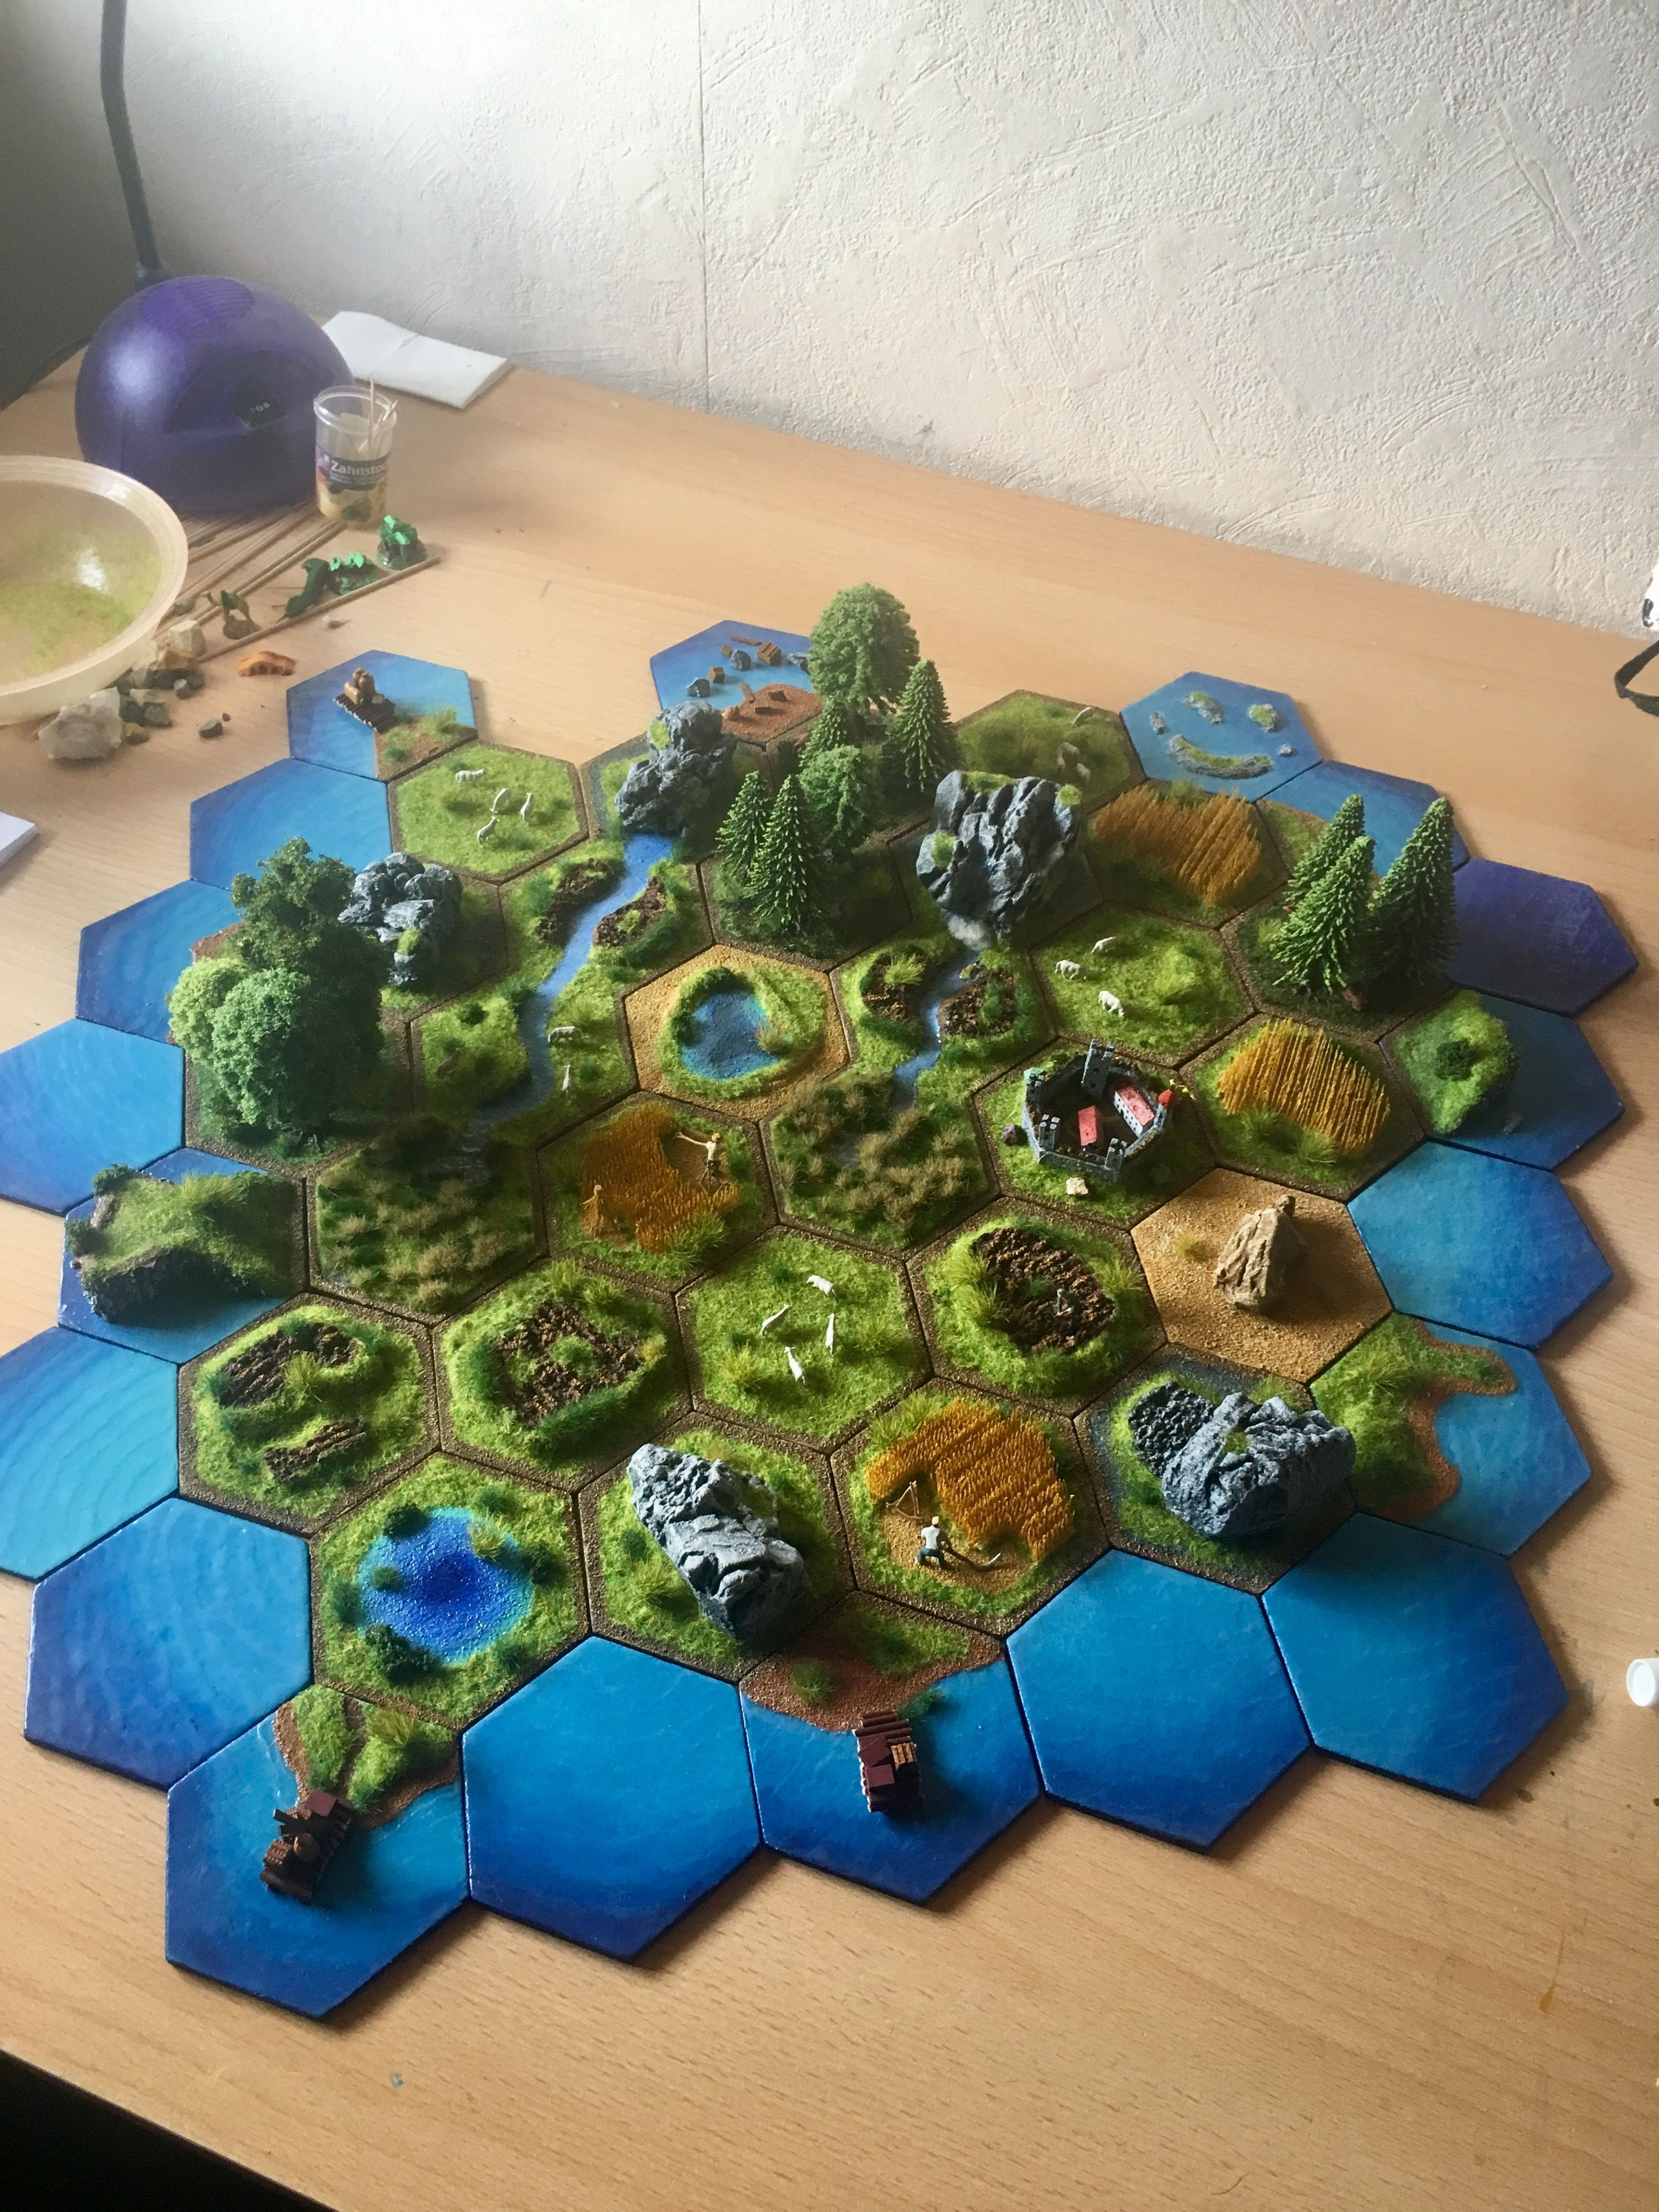 Settlers of catan image by L L on Catan DIY Catan board